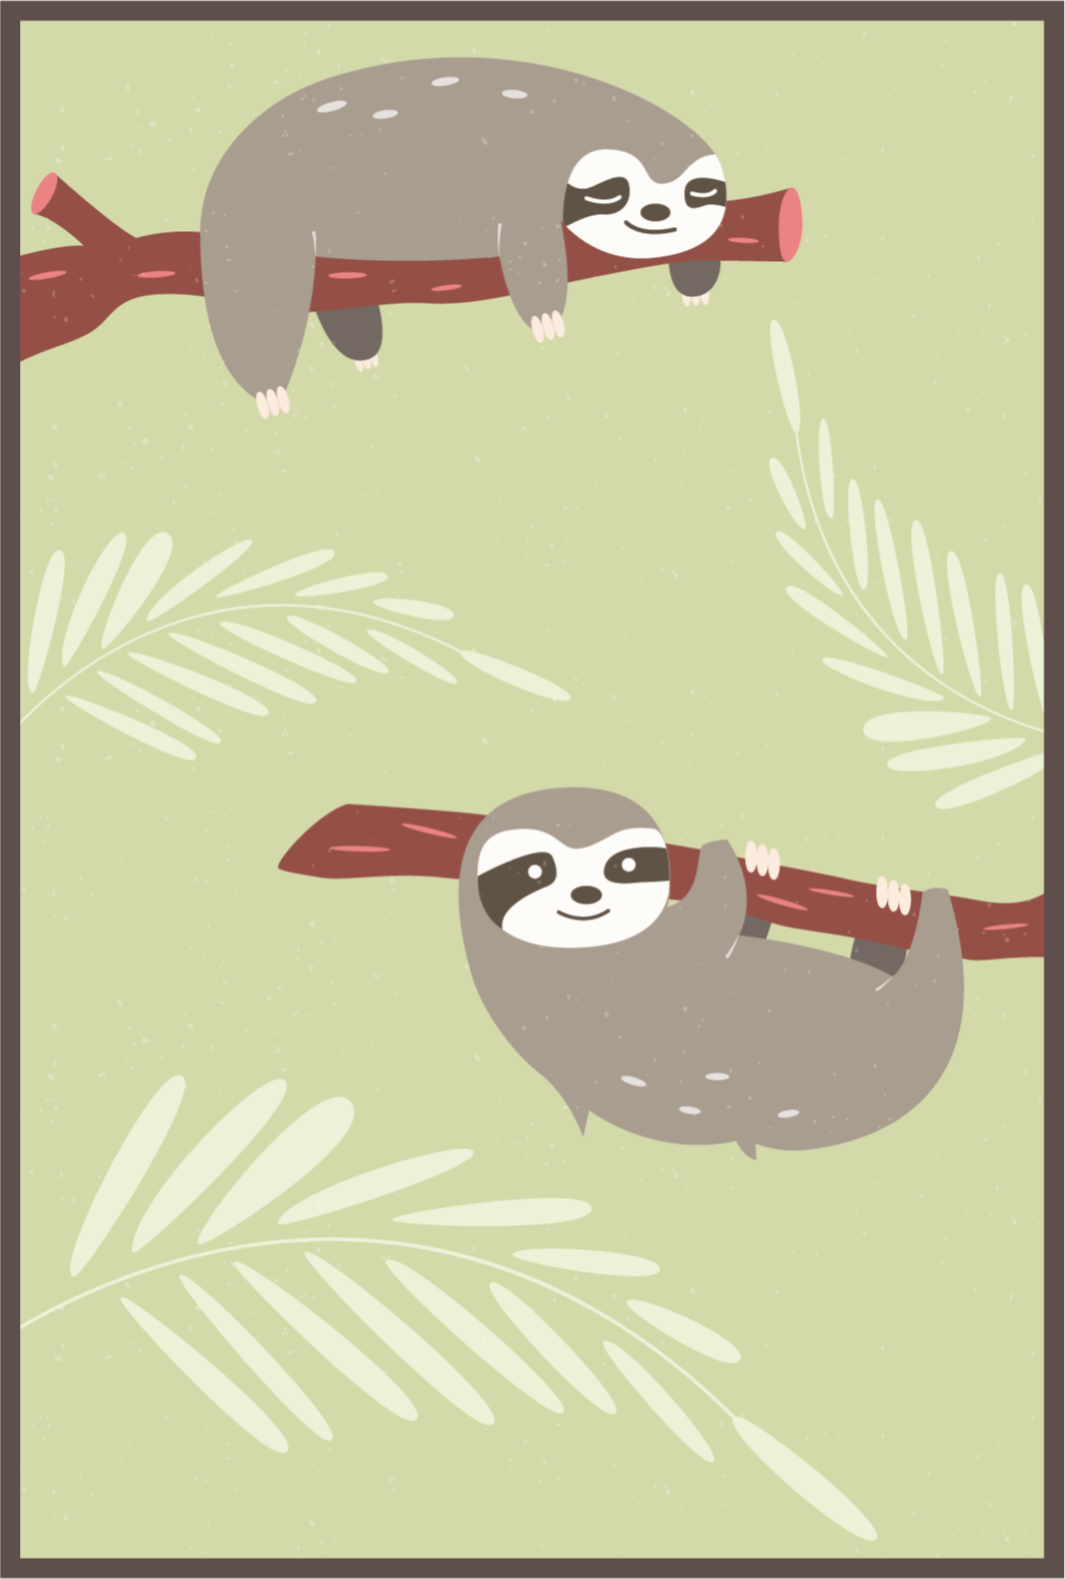 TenStickers. Relaxed sloth animal mat. Are you tired after a long hard day of work or school? Well then get relaxed with this relaxing sloth animal vinyl rug! Order it now to feel relaxed!